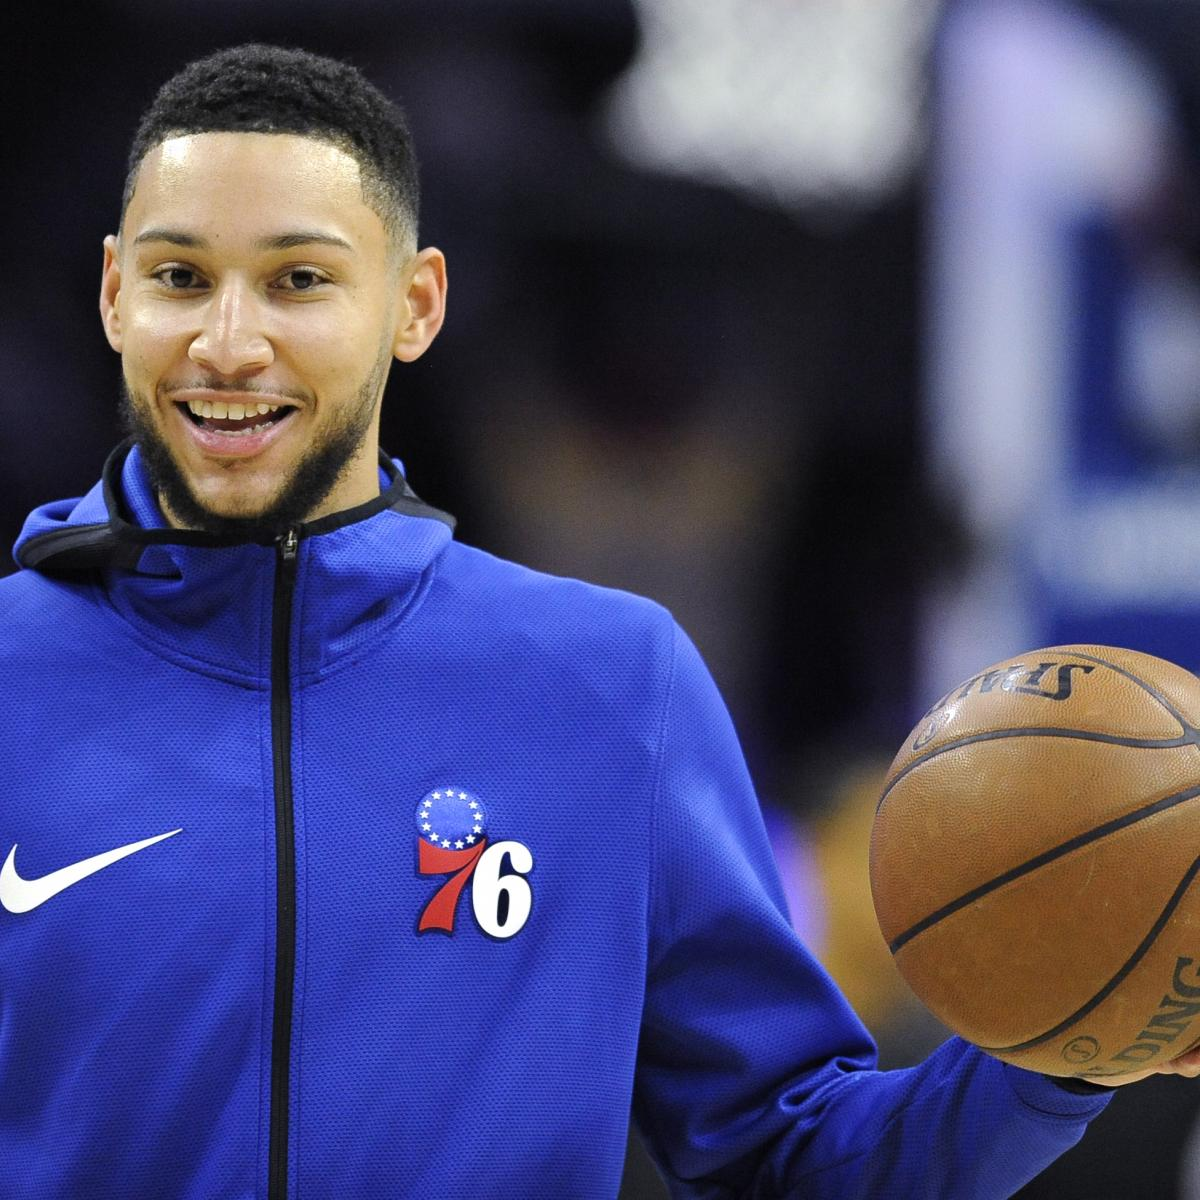 Last year's NBA Rookie of the Year, Philadelphia 76ers point guard Ben Simmons , told Keith Pompey of the Philadelphia Inquirer that he believes Luka Doncic should win the award this season...